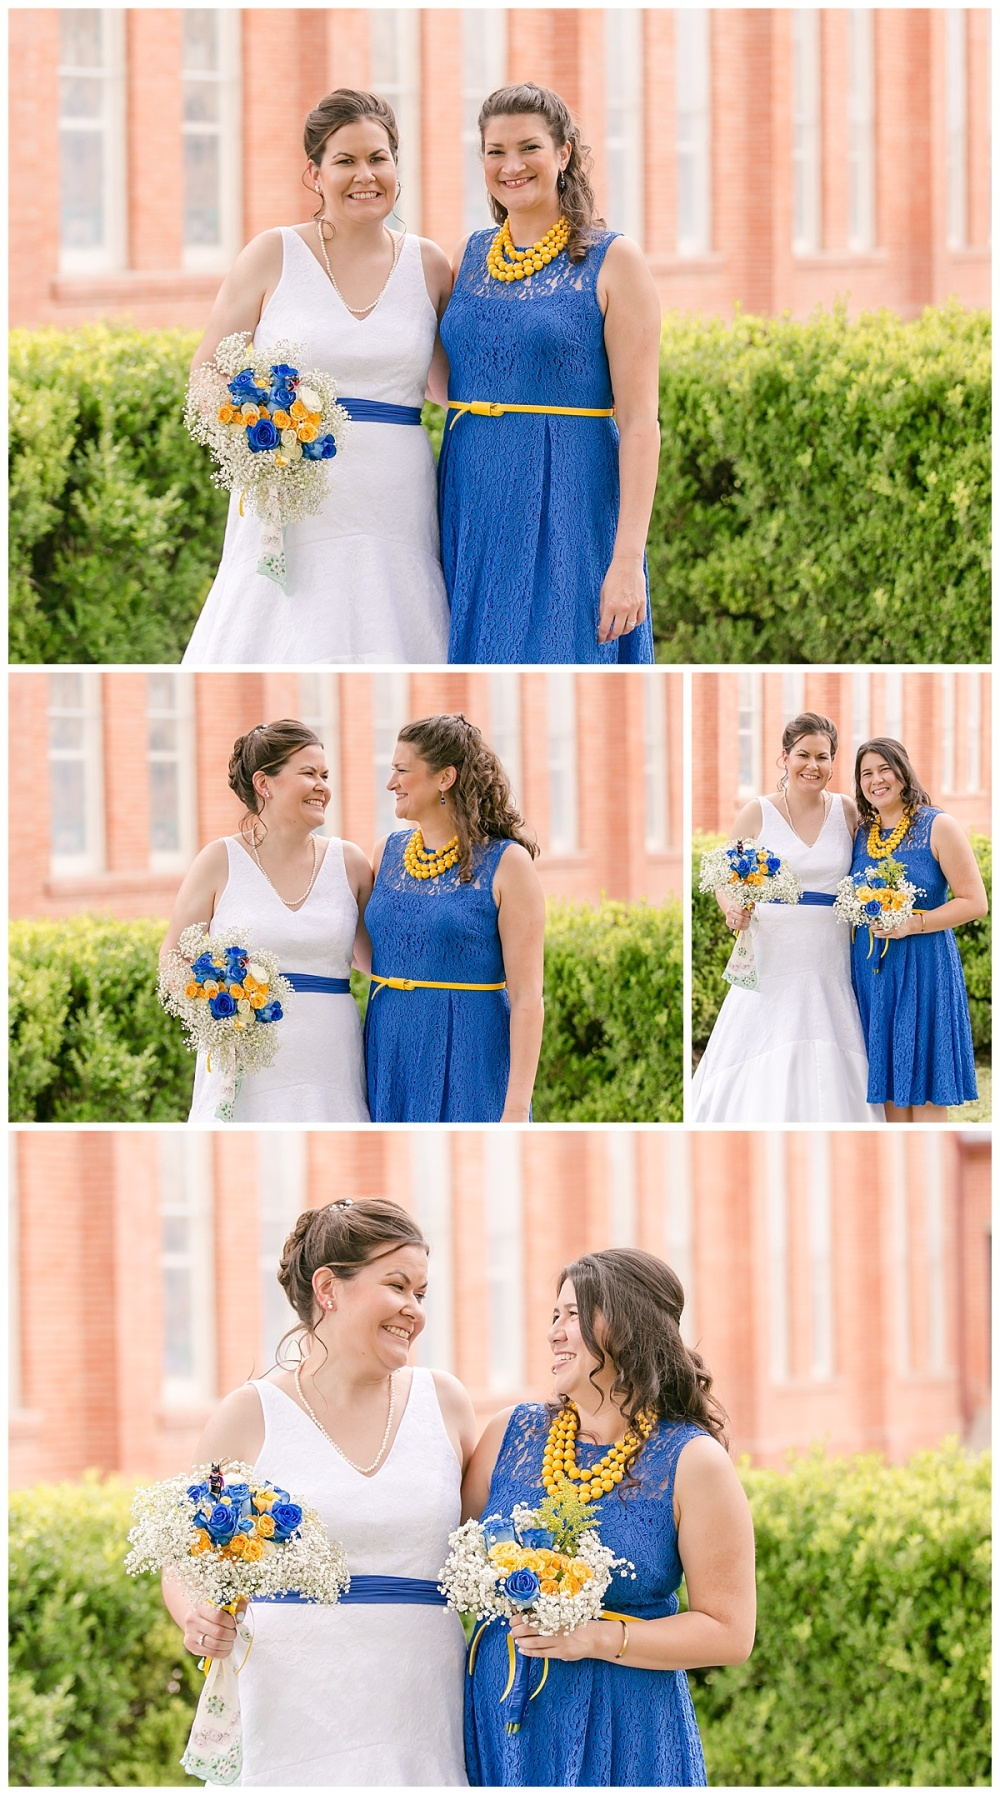 Texas-Wedding-Photographer-La-Coste-Our-Lady-Of-Grace-Church-Bride-Groom-Lego-Theme-Carly-Barton-Photography_0037.jpg